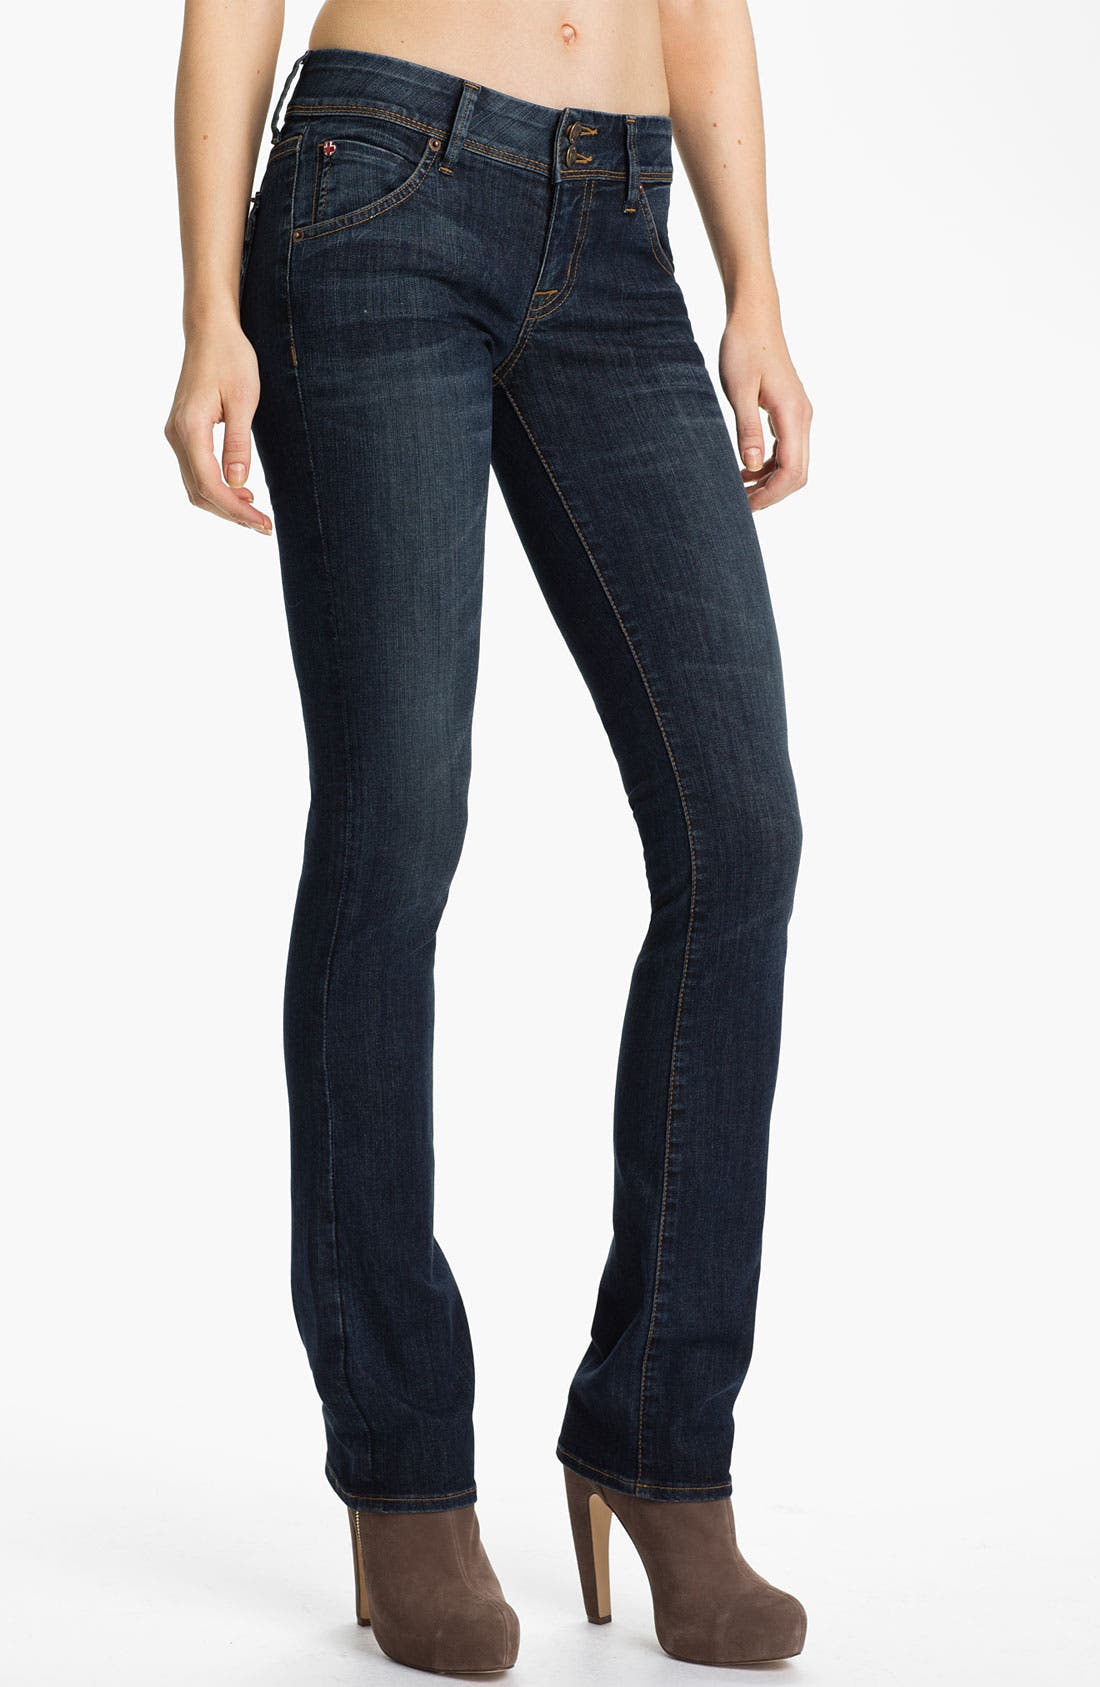 Alternate Image 1 Selected - Hudson Jeans 'Beth' Baby Bootcut Jeans (Bethnal)